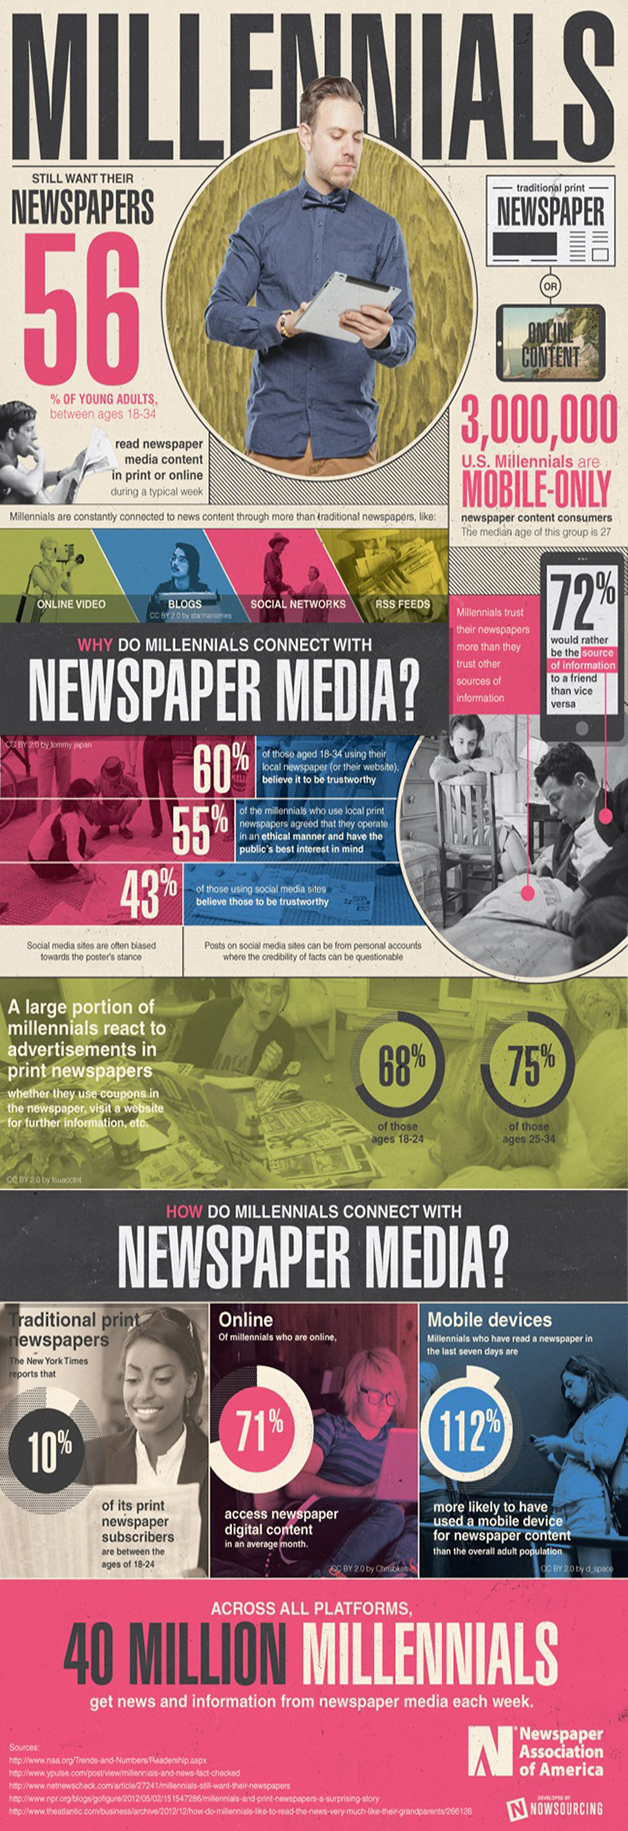 NAA-Millennials-Still-Want-Their-Newspapers